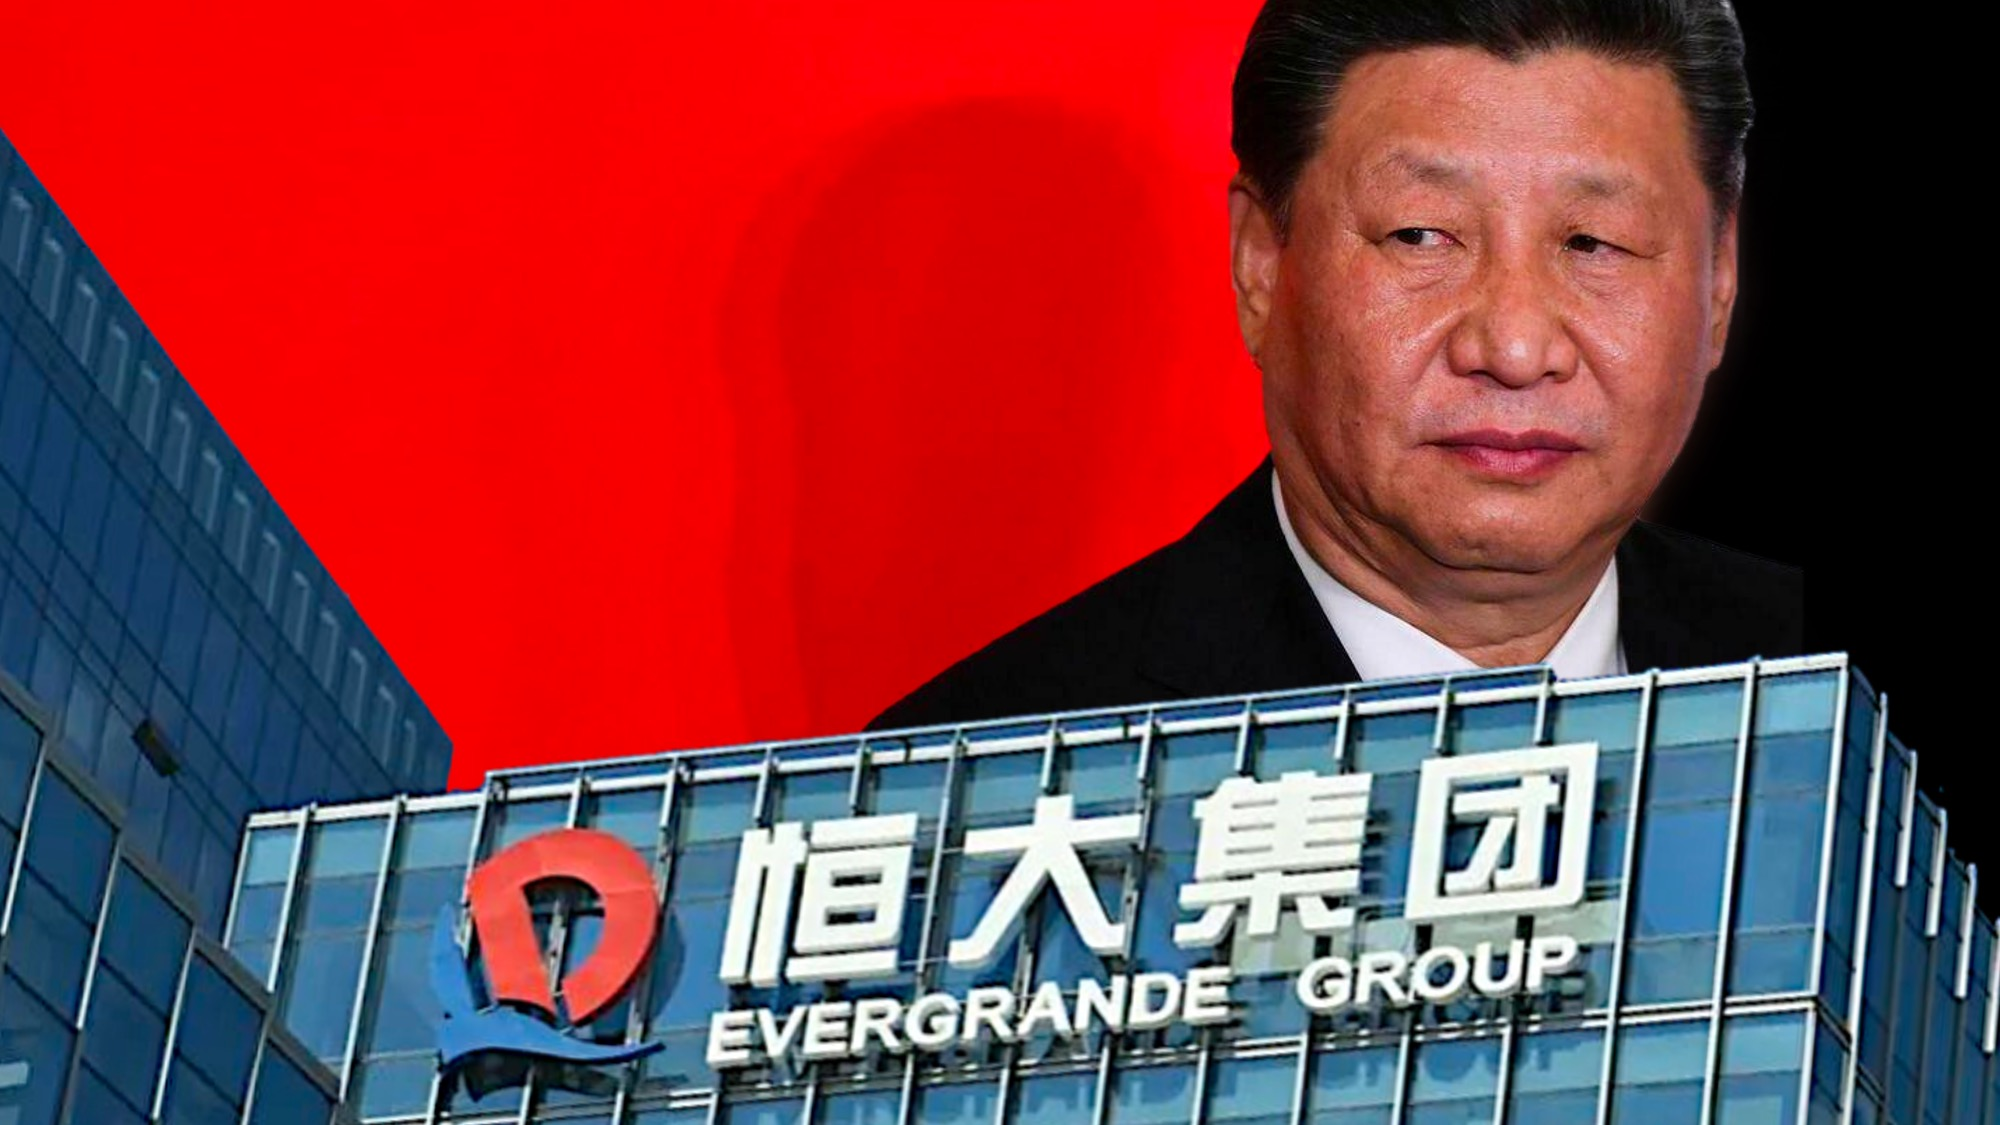 Just How Contagious is Evergrande?